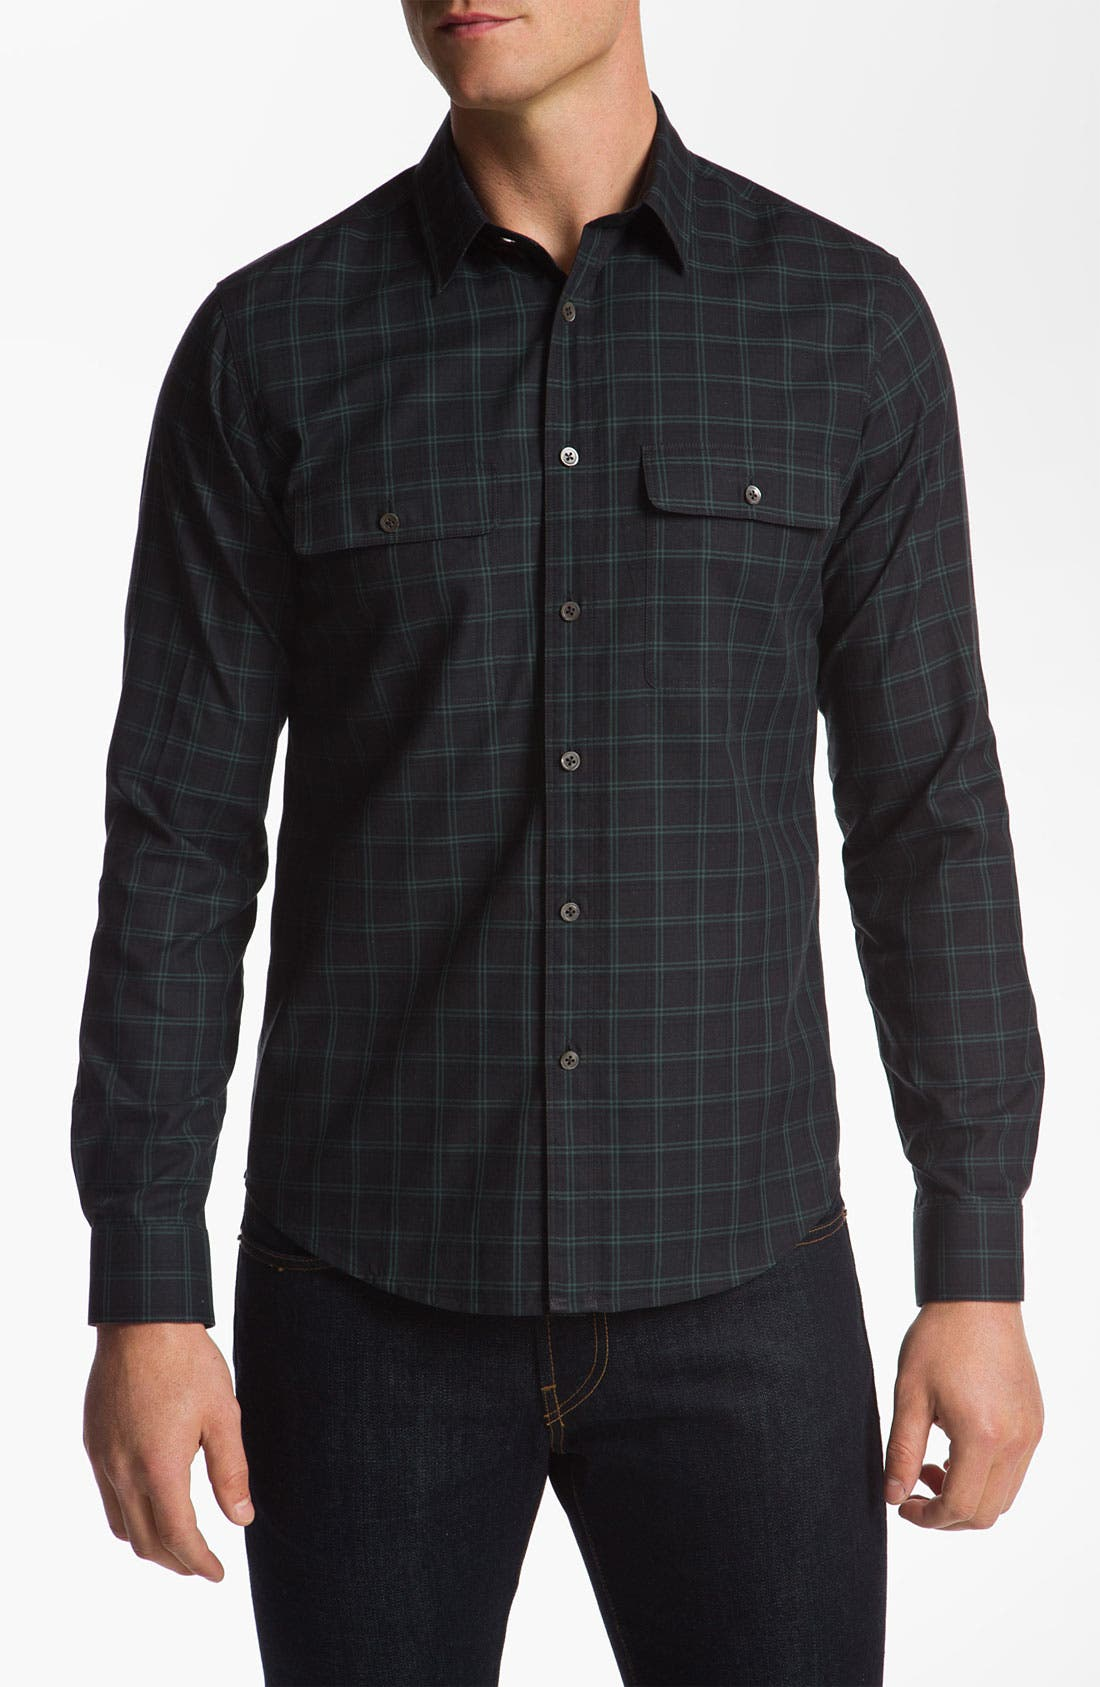 Alternate Image 1 Selected - Theory 'Morvan' Woven Shirt